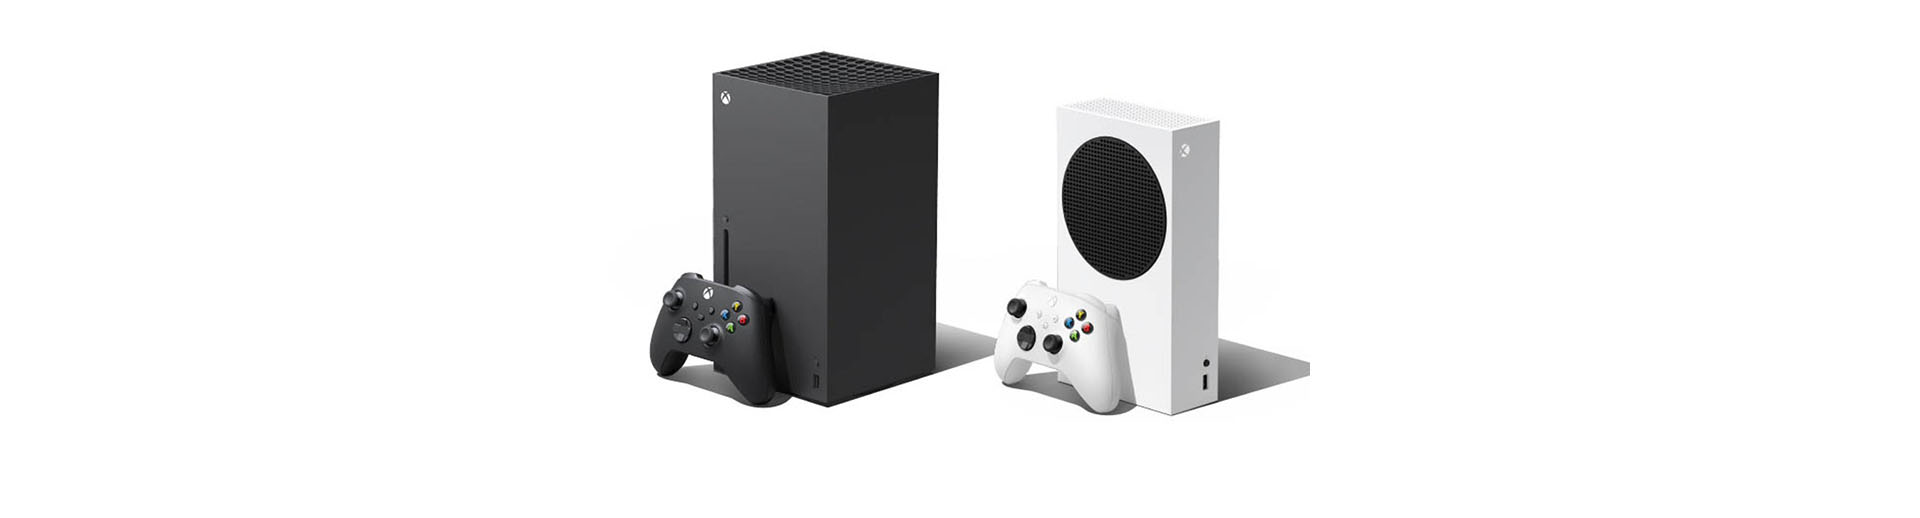 Xbox-Series-X-and-SeriesS